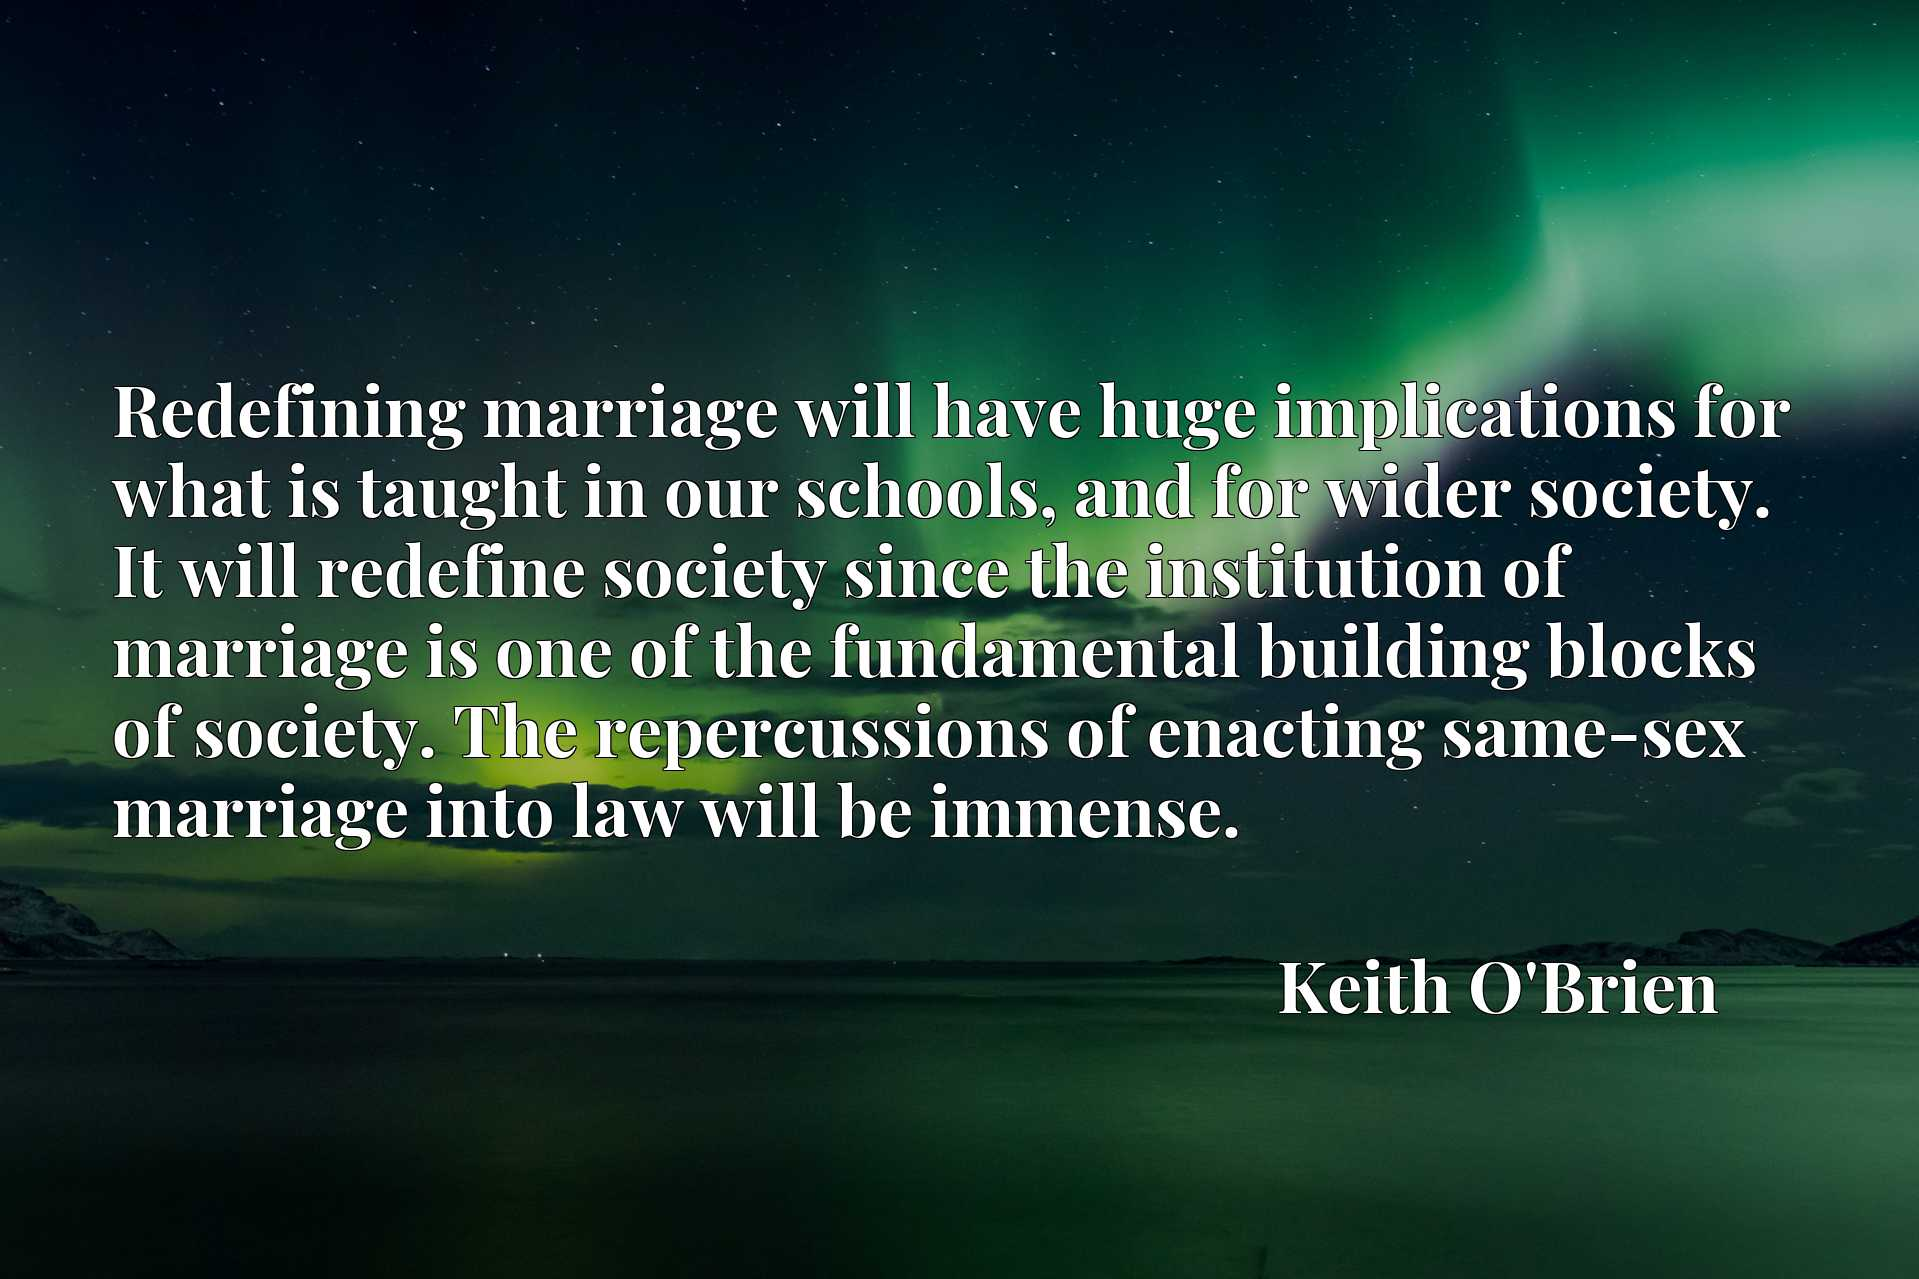 Redefining marriage will have huge implications for what is taught in our schools, and for wider society. It will redefine society since the institution of marriage is one of the fundamental building blocks of society. The repercussions of enacting same-sex marriage into law will be immense.